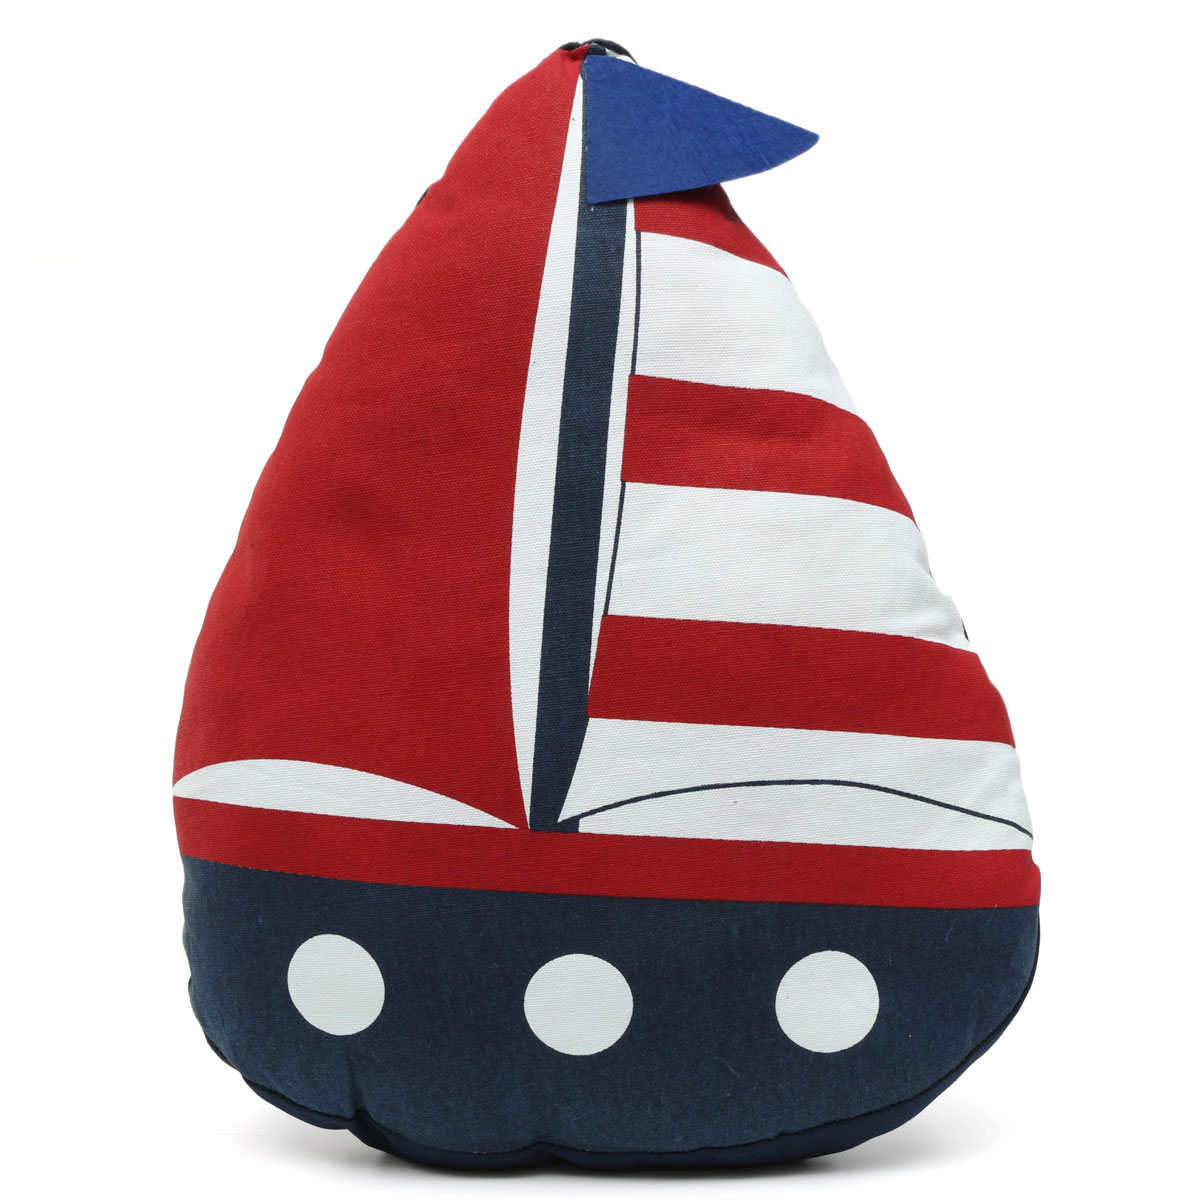 Nautical Throw Pillow Cases : Mediterranean Style Sail Boat Shape Nautical Throw Pillow Case Cushion Cover eBay